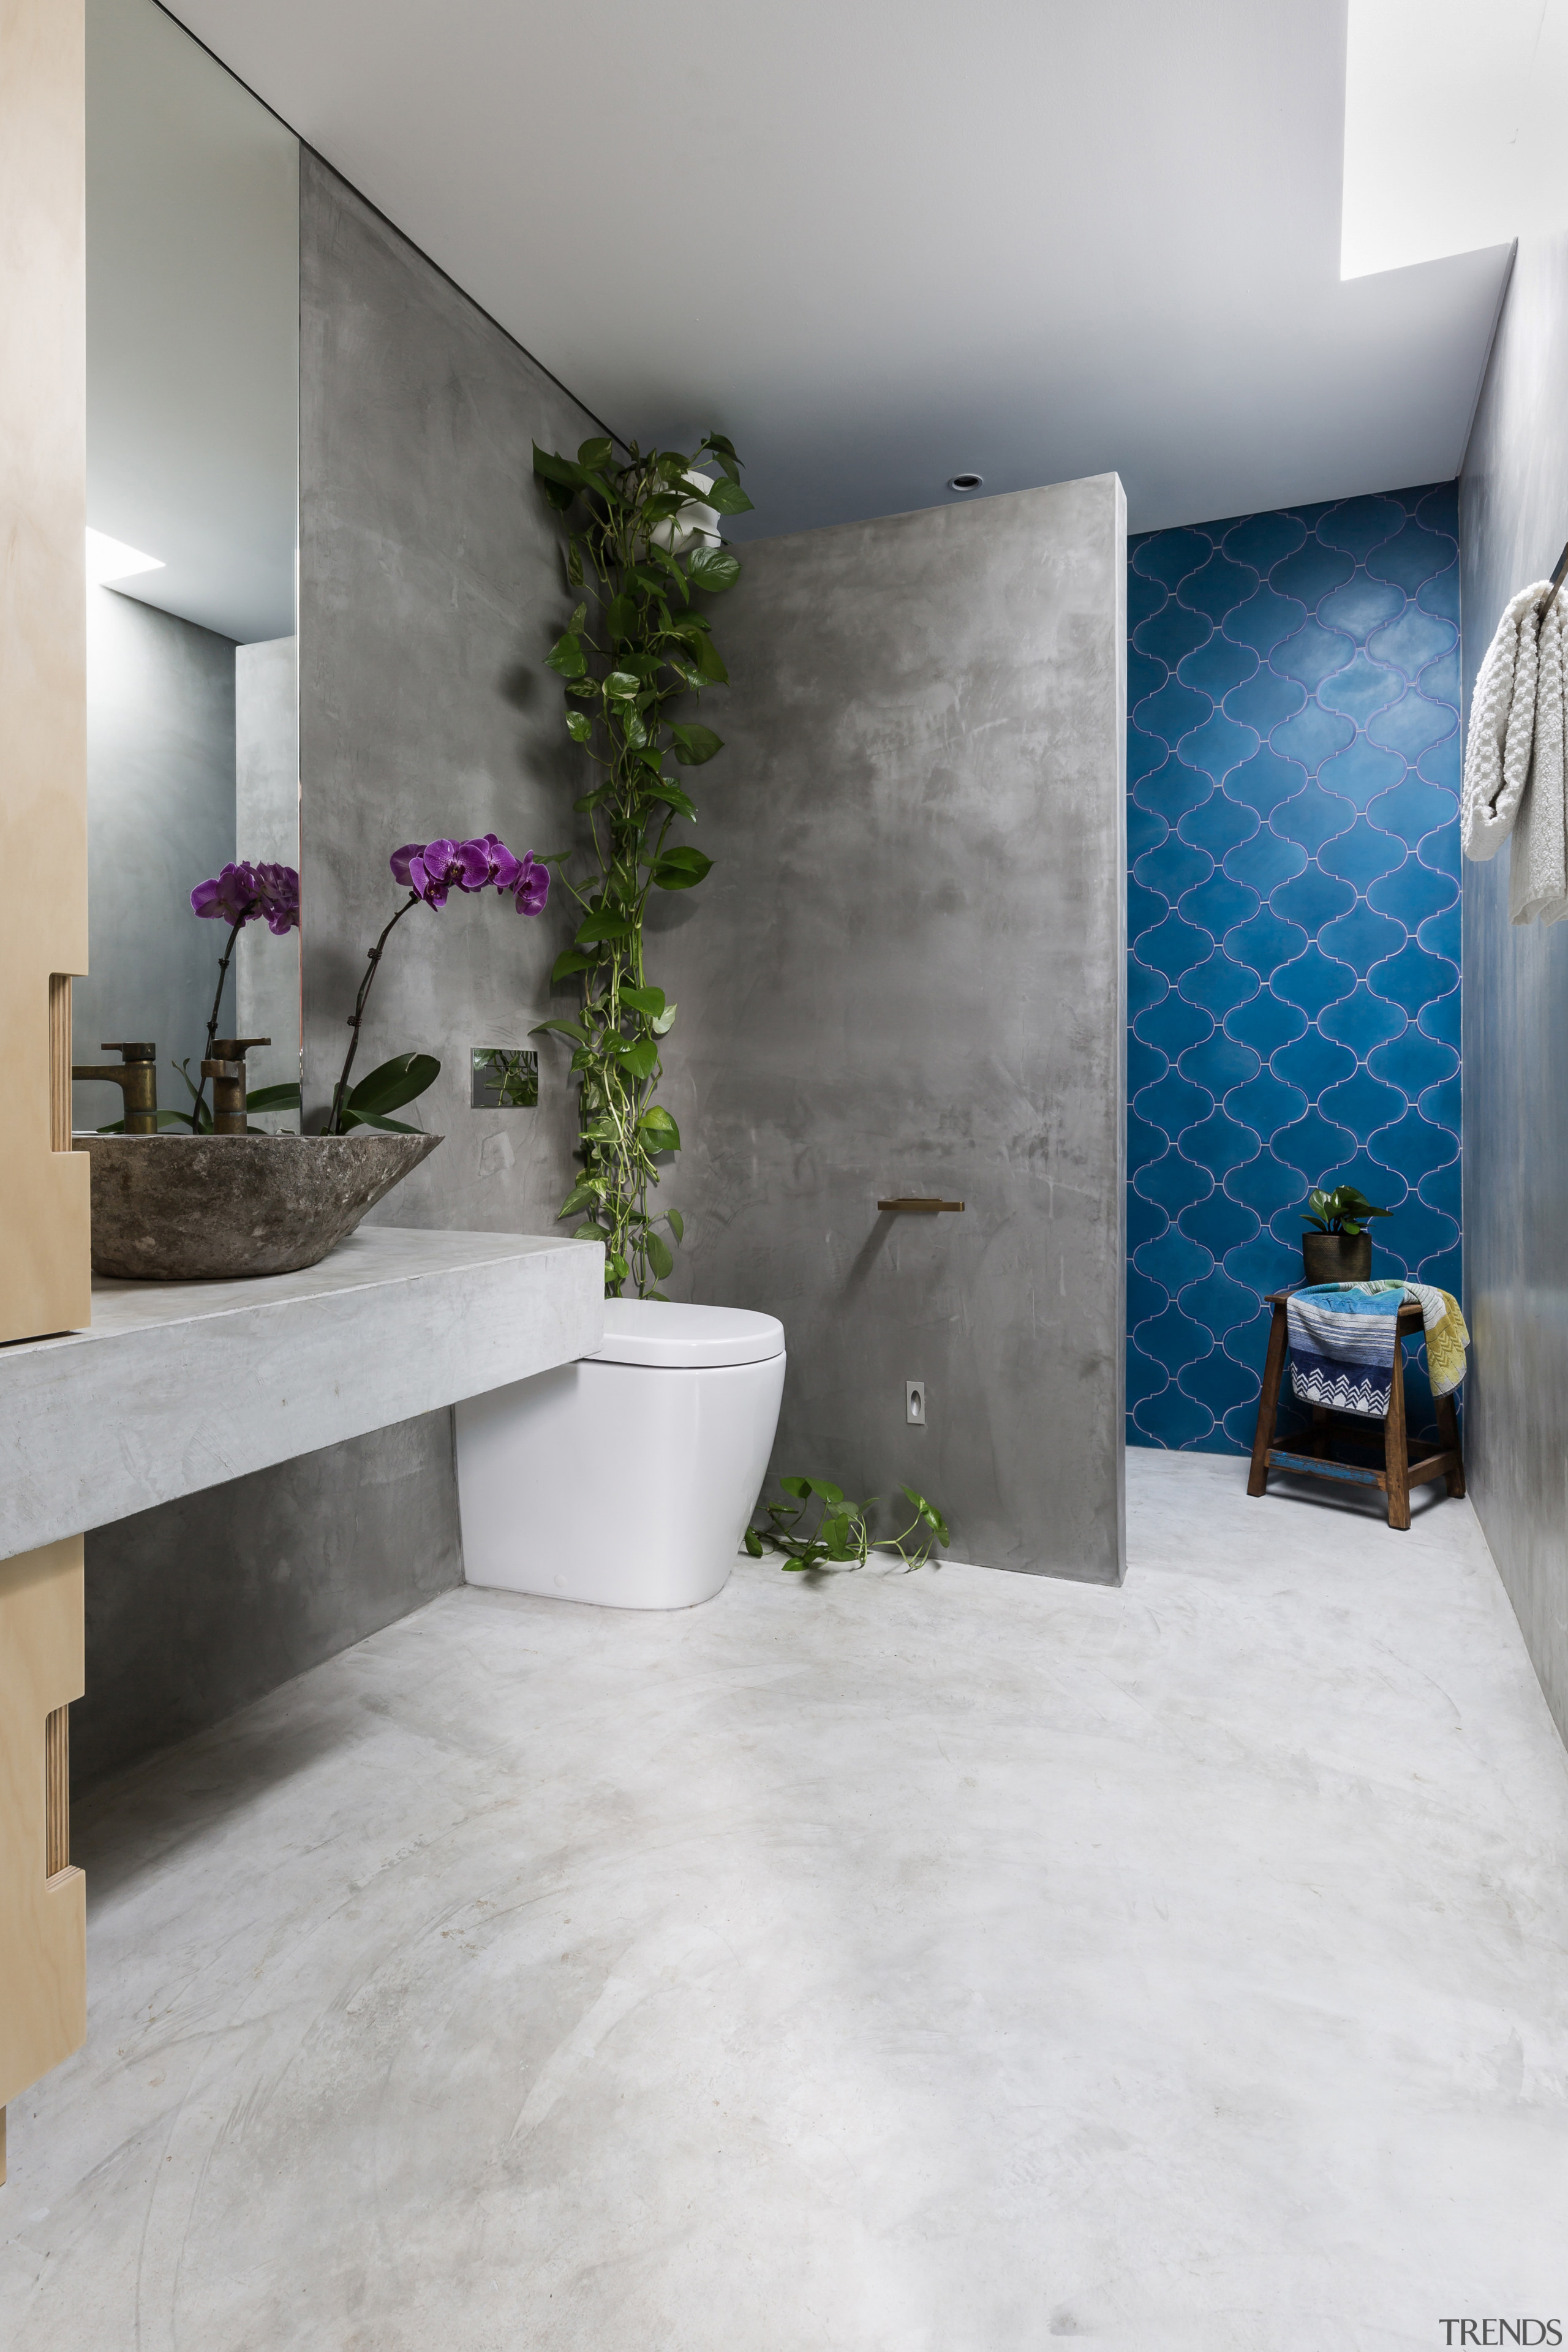 Want a durable, affordable floor that ties in architecture, bathroom, floor, flooring, home, house, interior design, room, tile, wall, gray, white, concrete vanity, Arc Seven